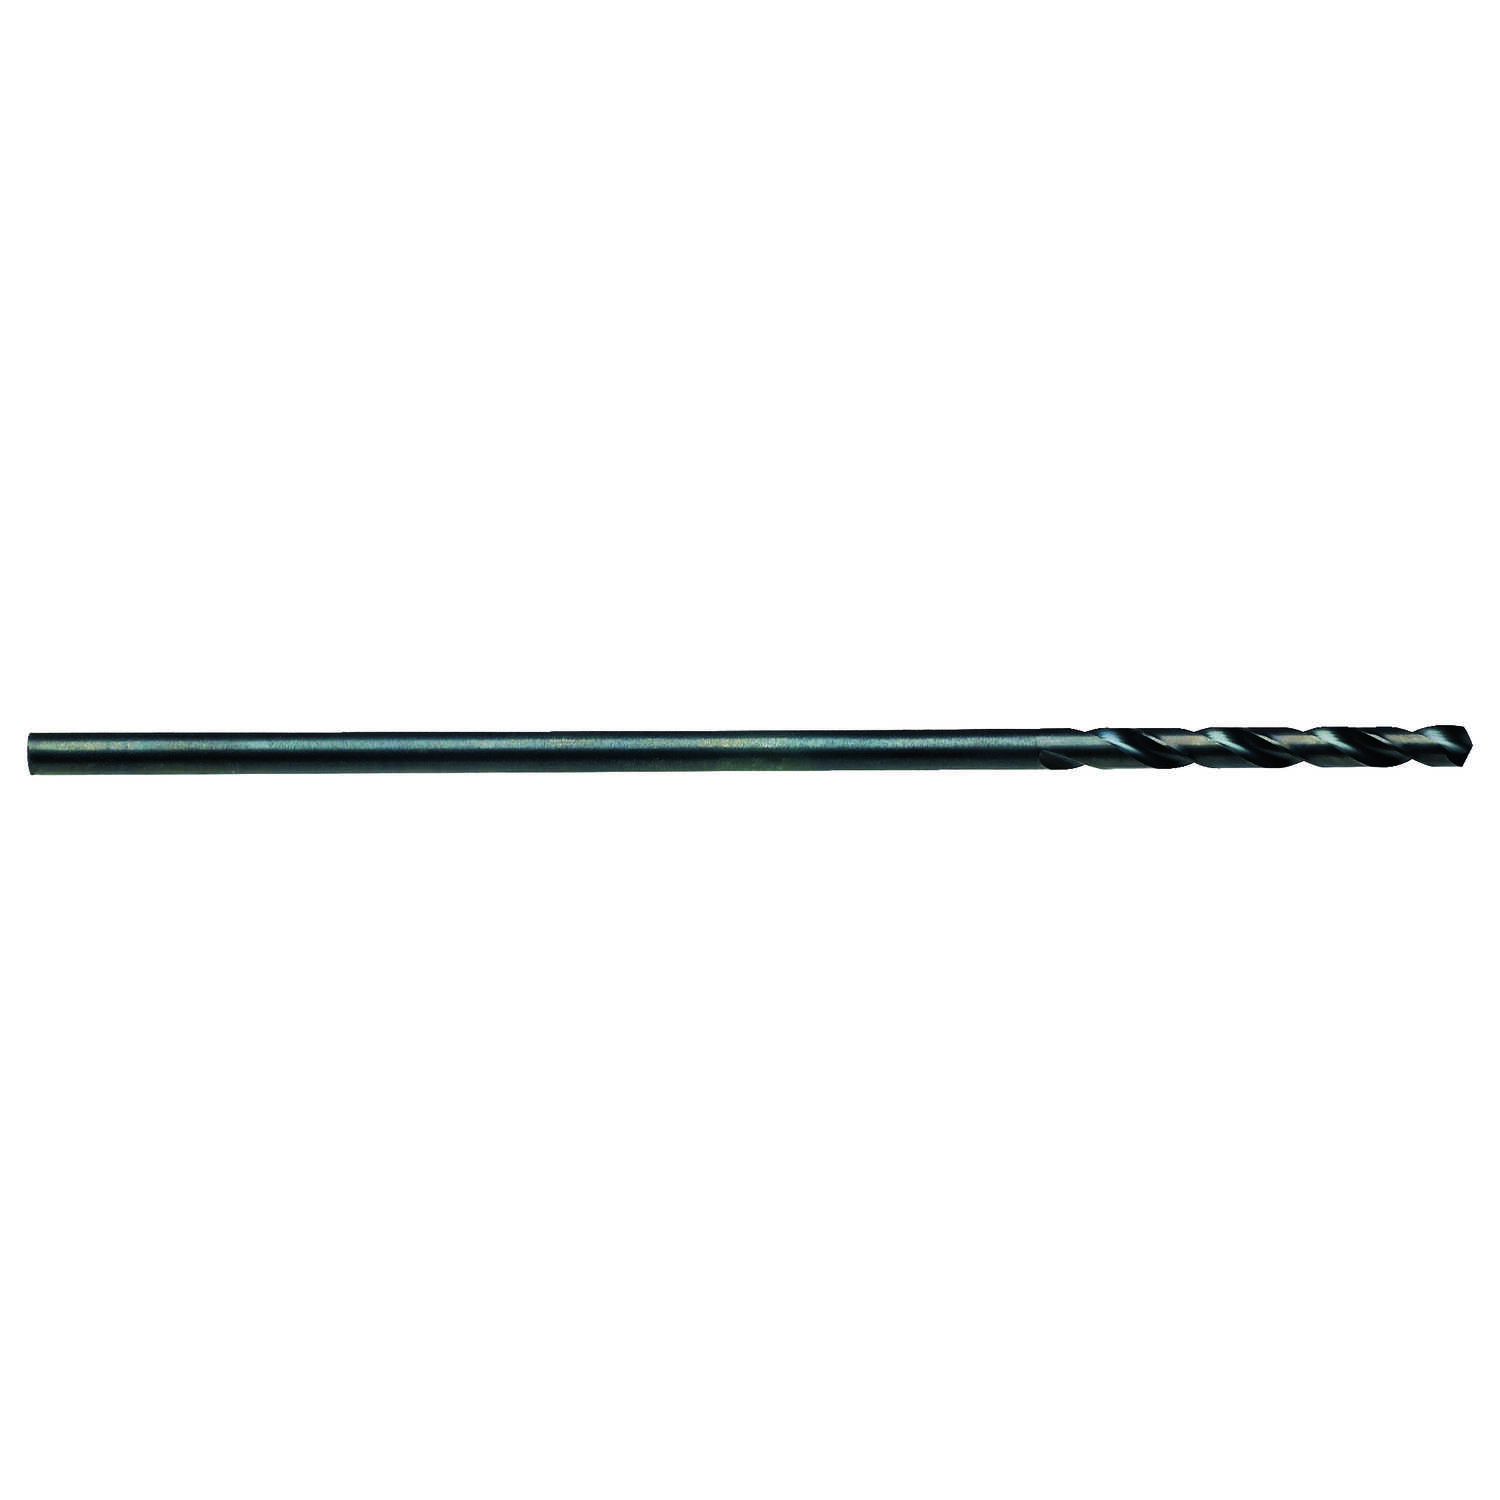 Irwin  Aircraft Extension  3/8 in. Dia. x 12 in. L High Speed Steel  Split Point Drill Bit  1 pc.